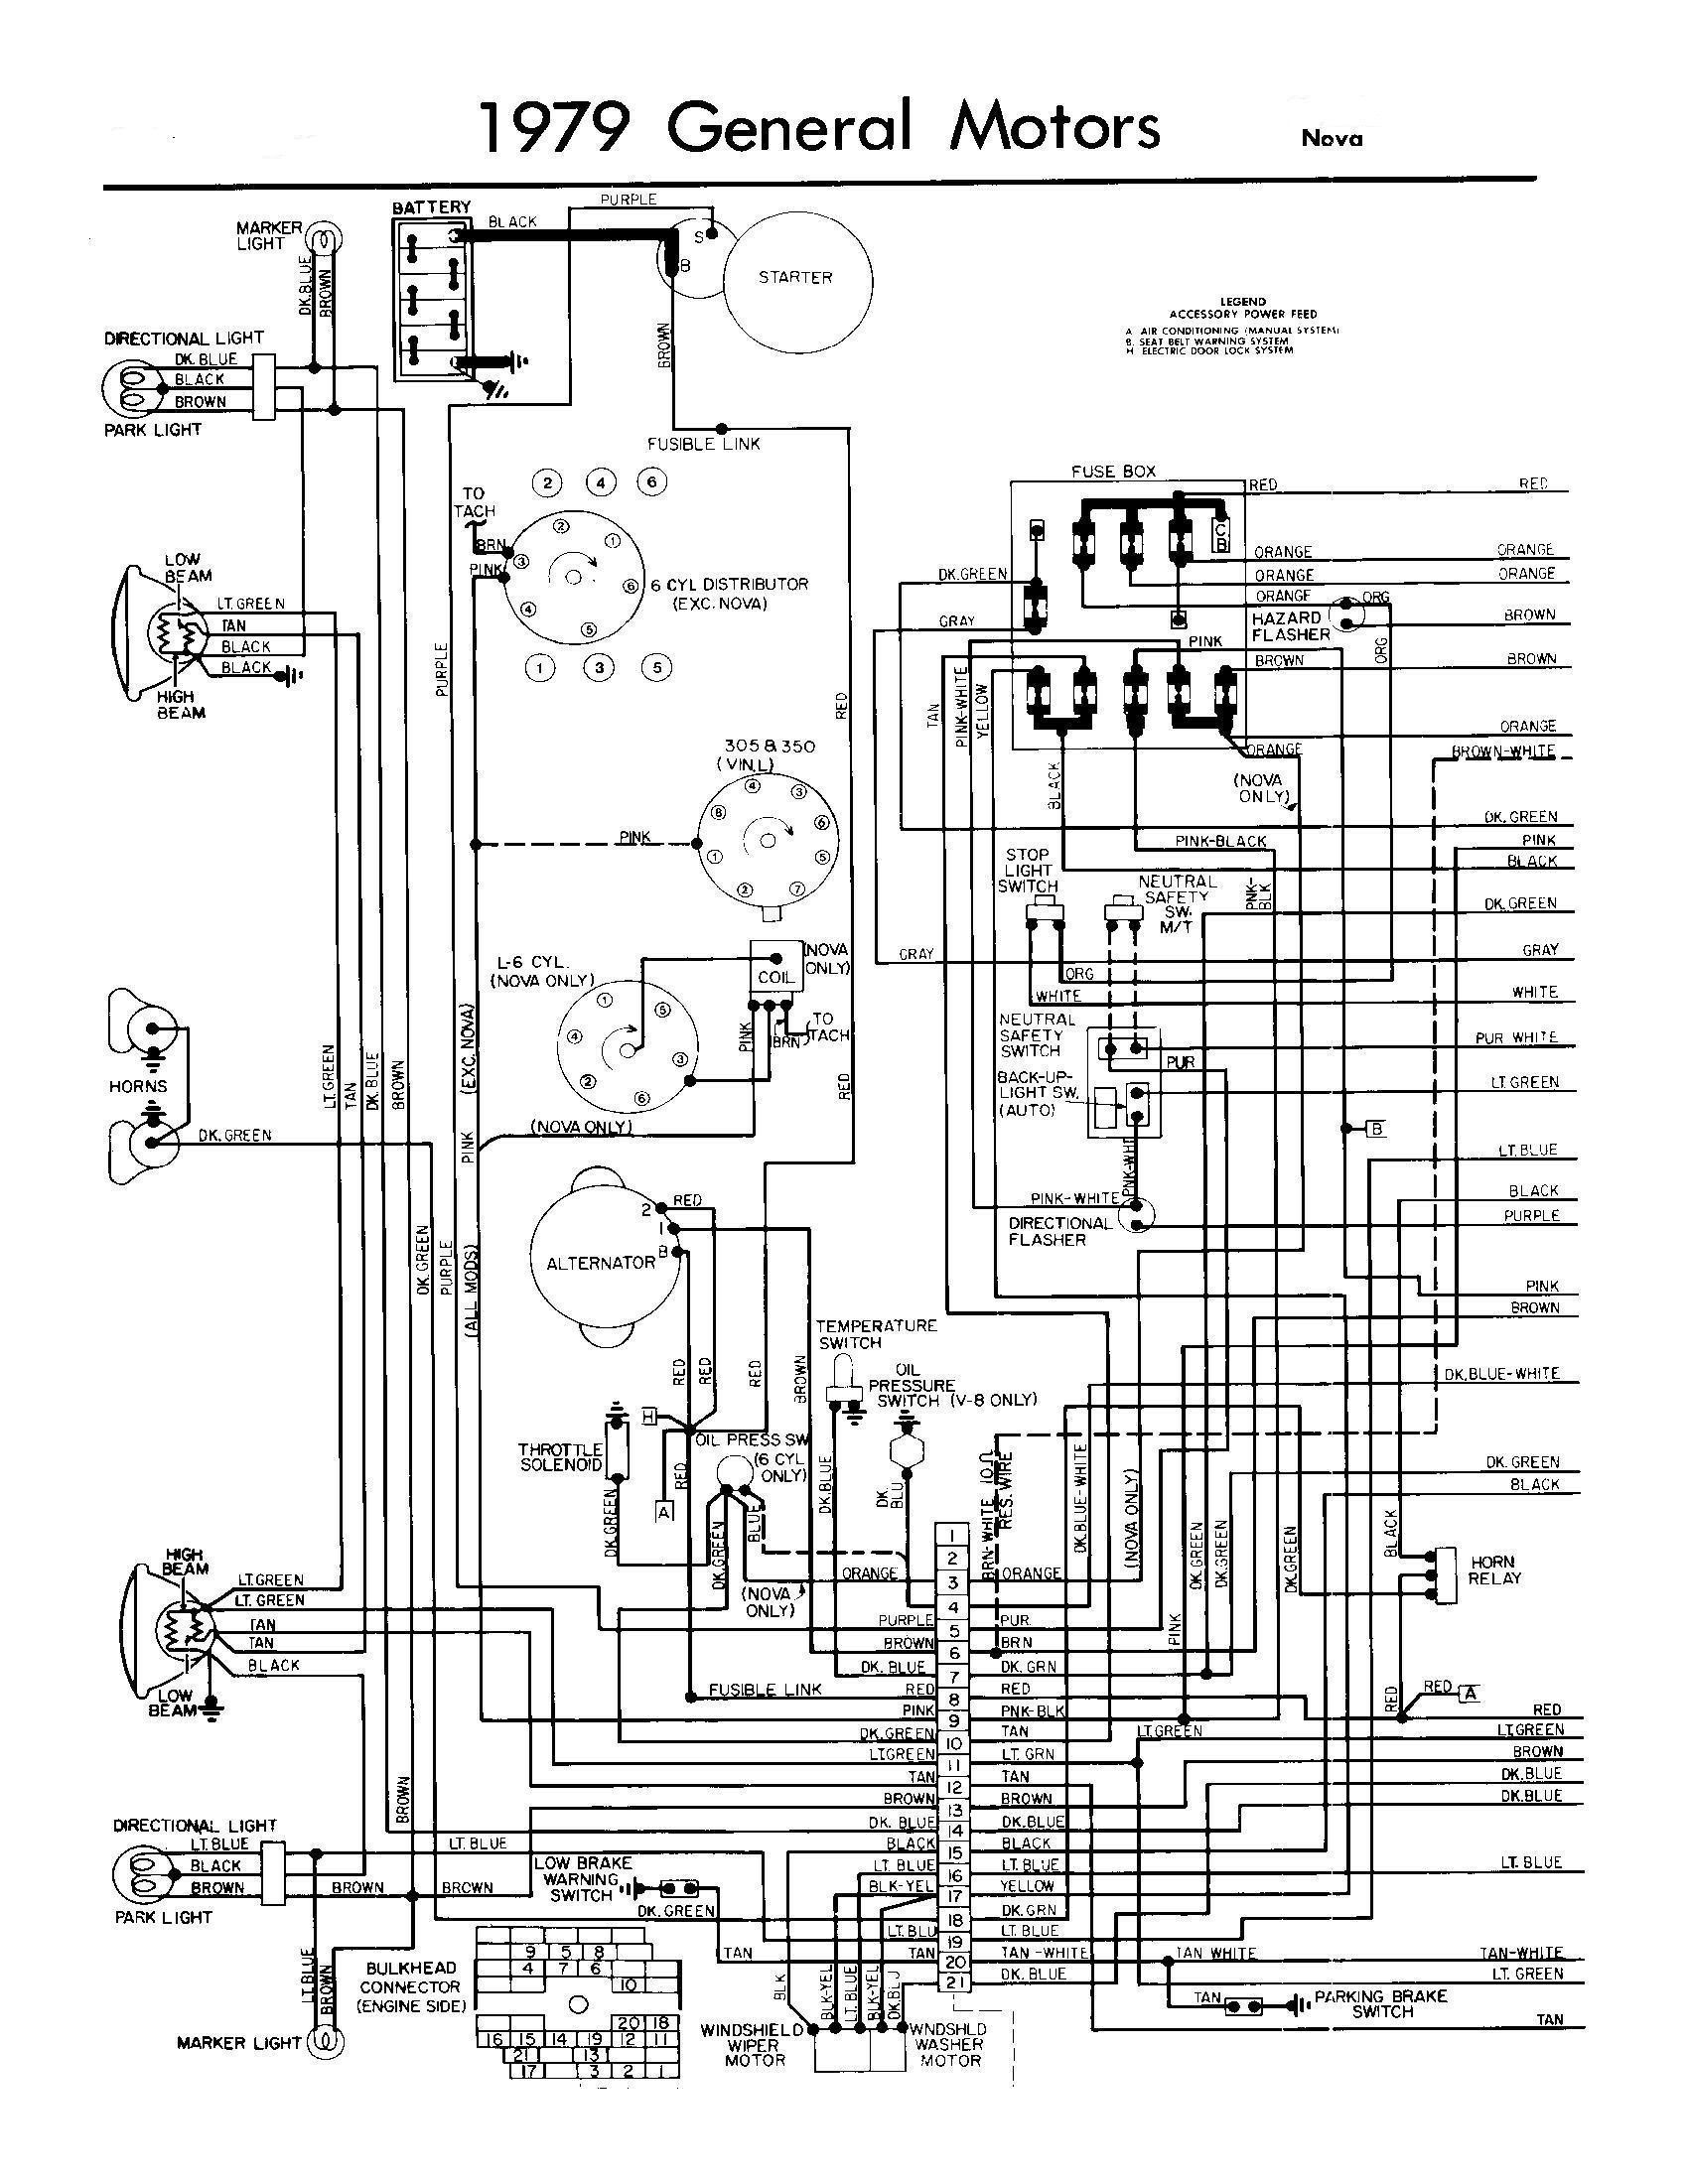 fuse box diagram besides 1980 pontiac trans am cruise control  wiring diagram 1980 pontiac firebird #10